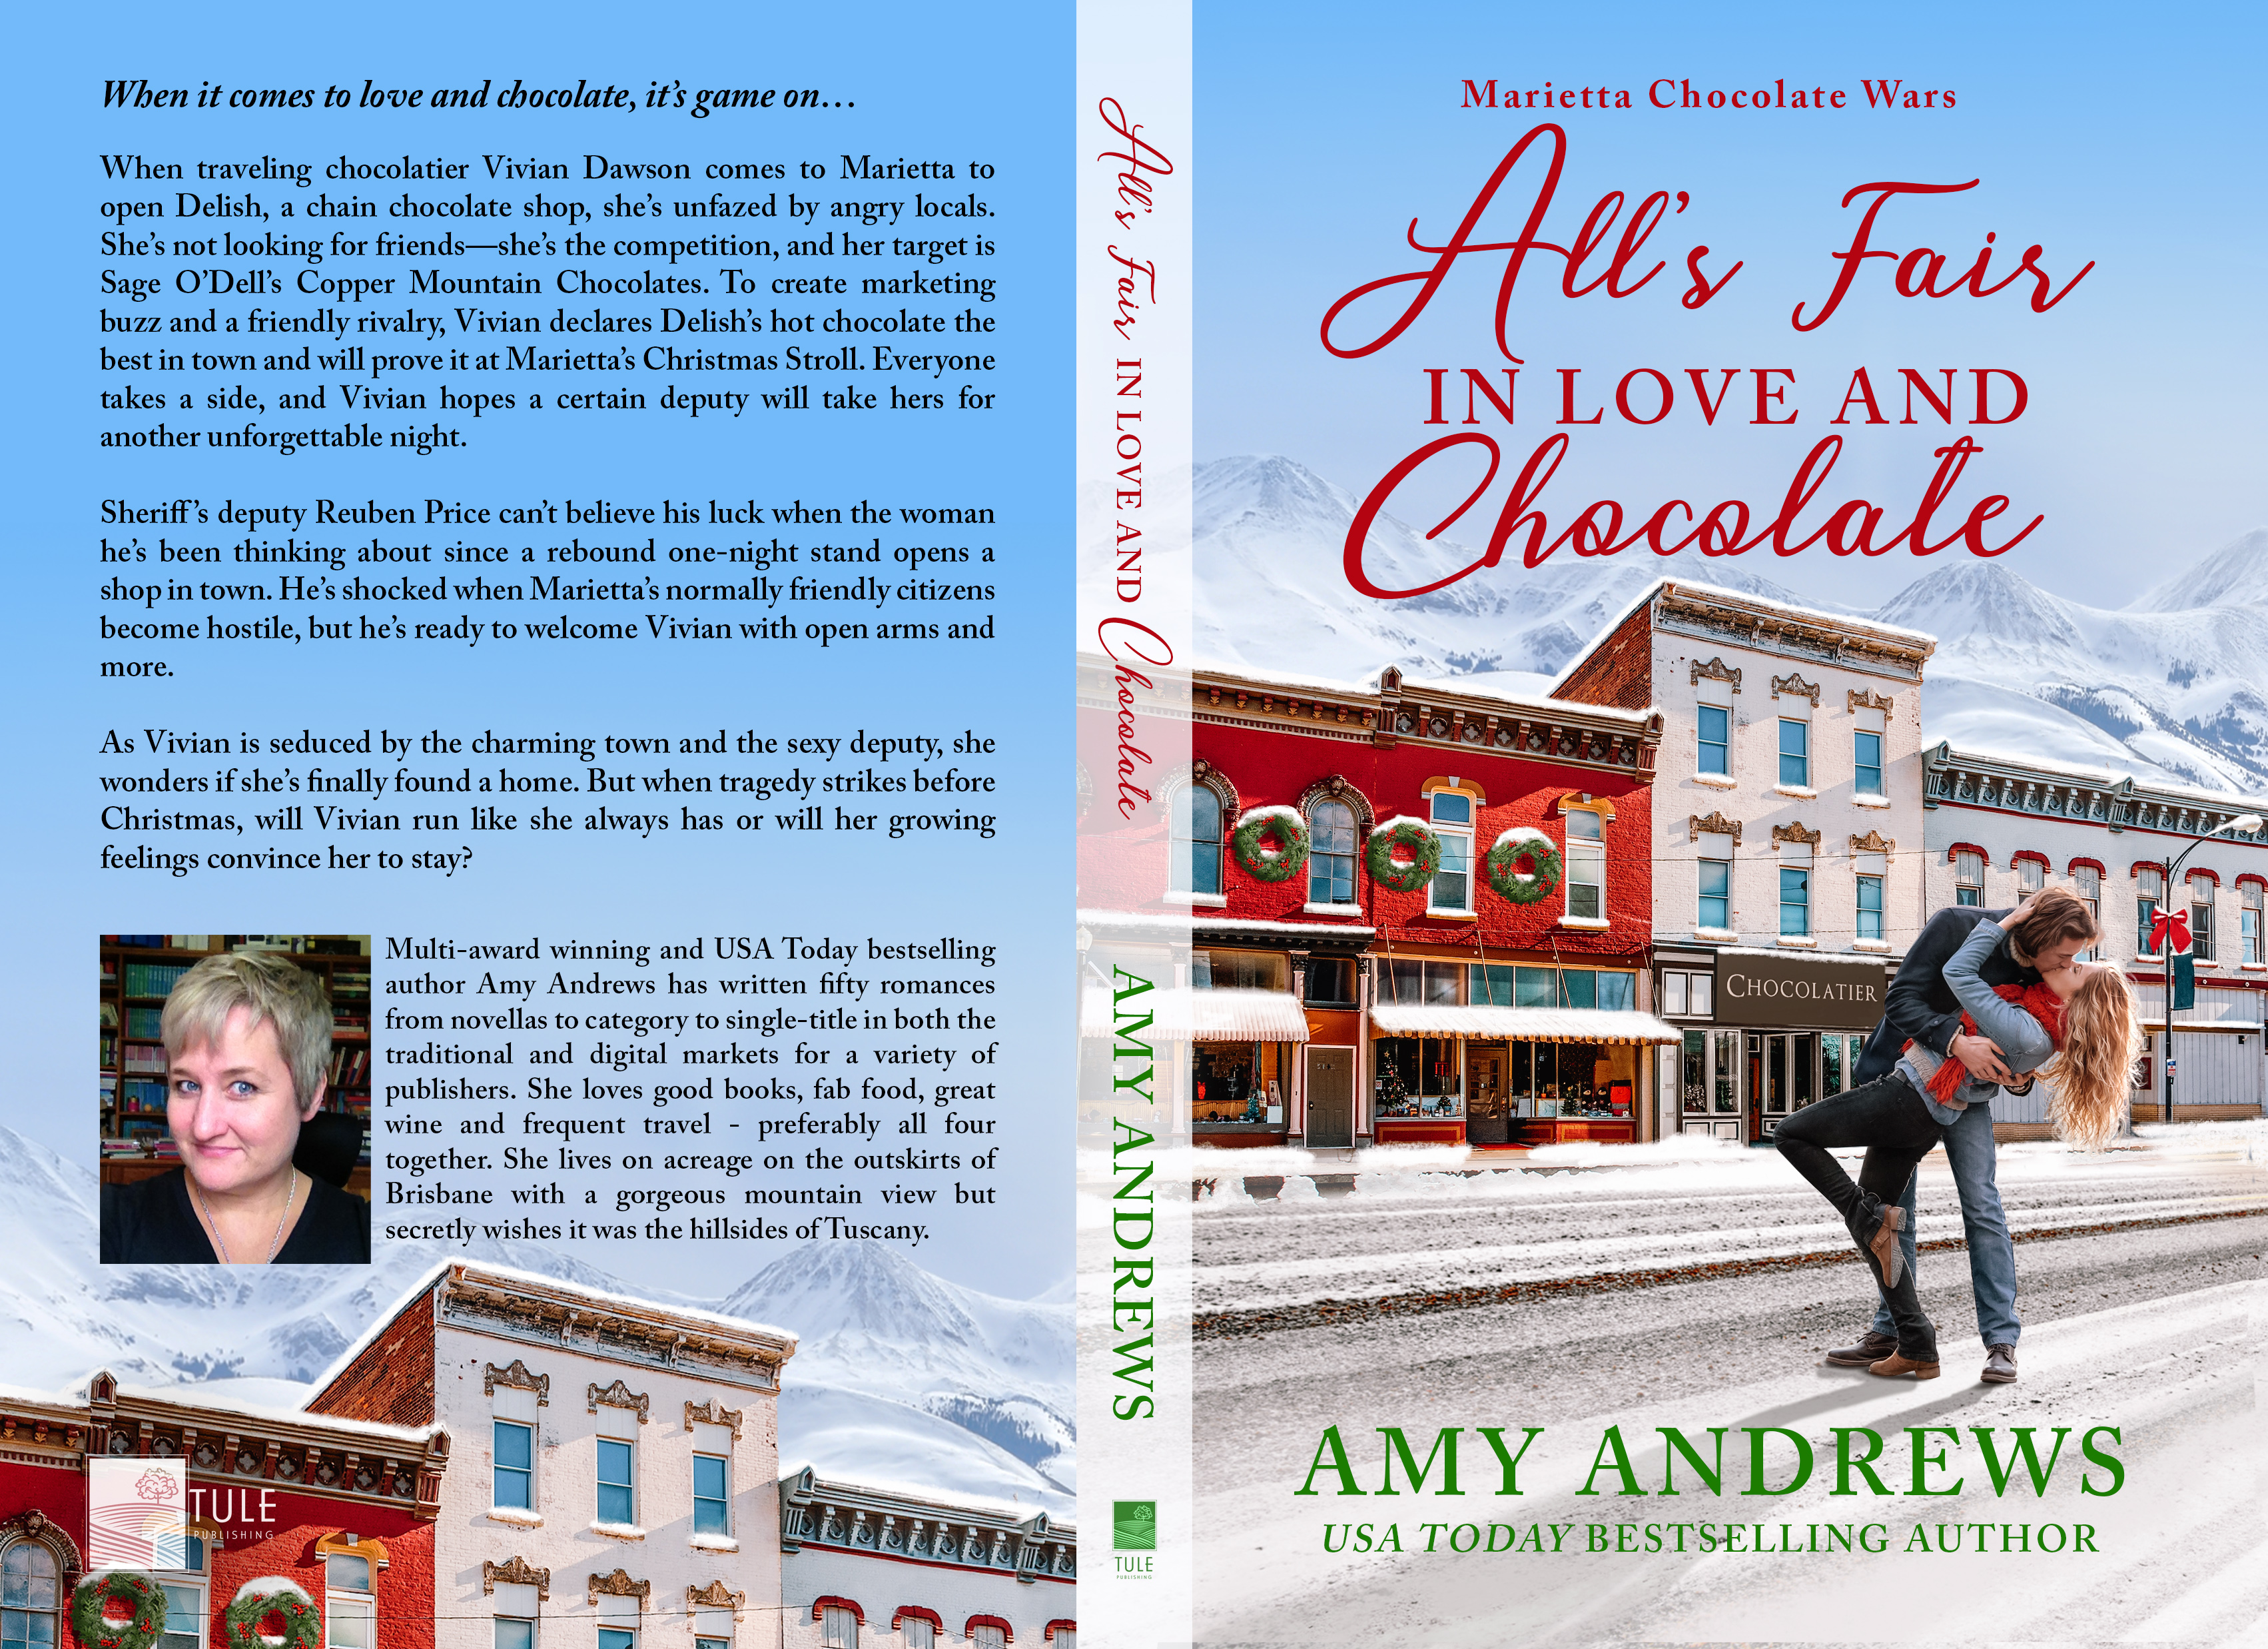 All's Fair in Love and Chocolate 5